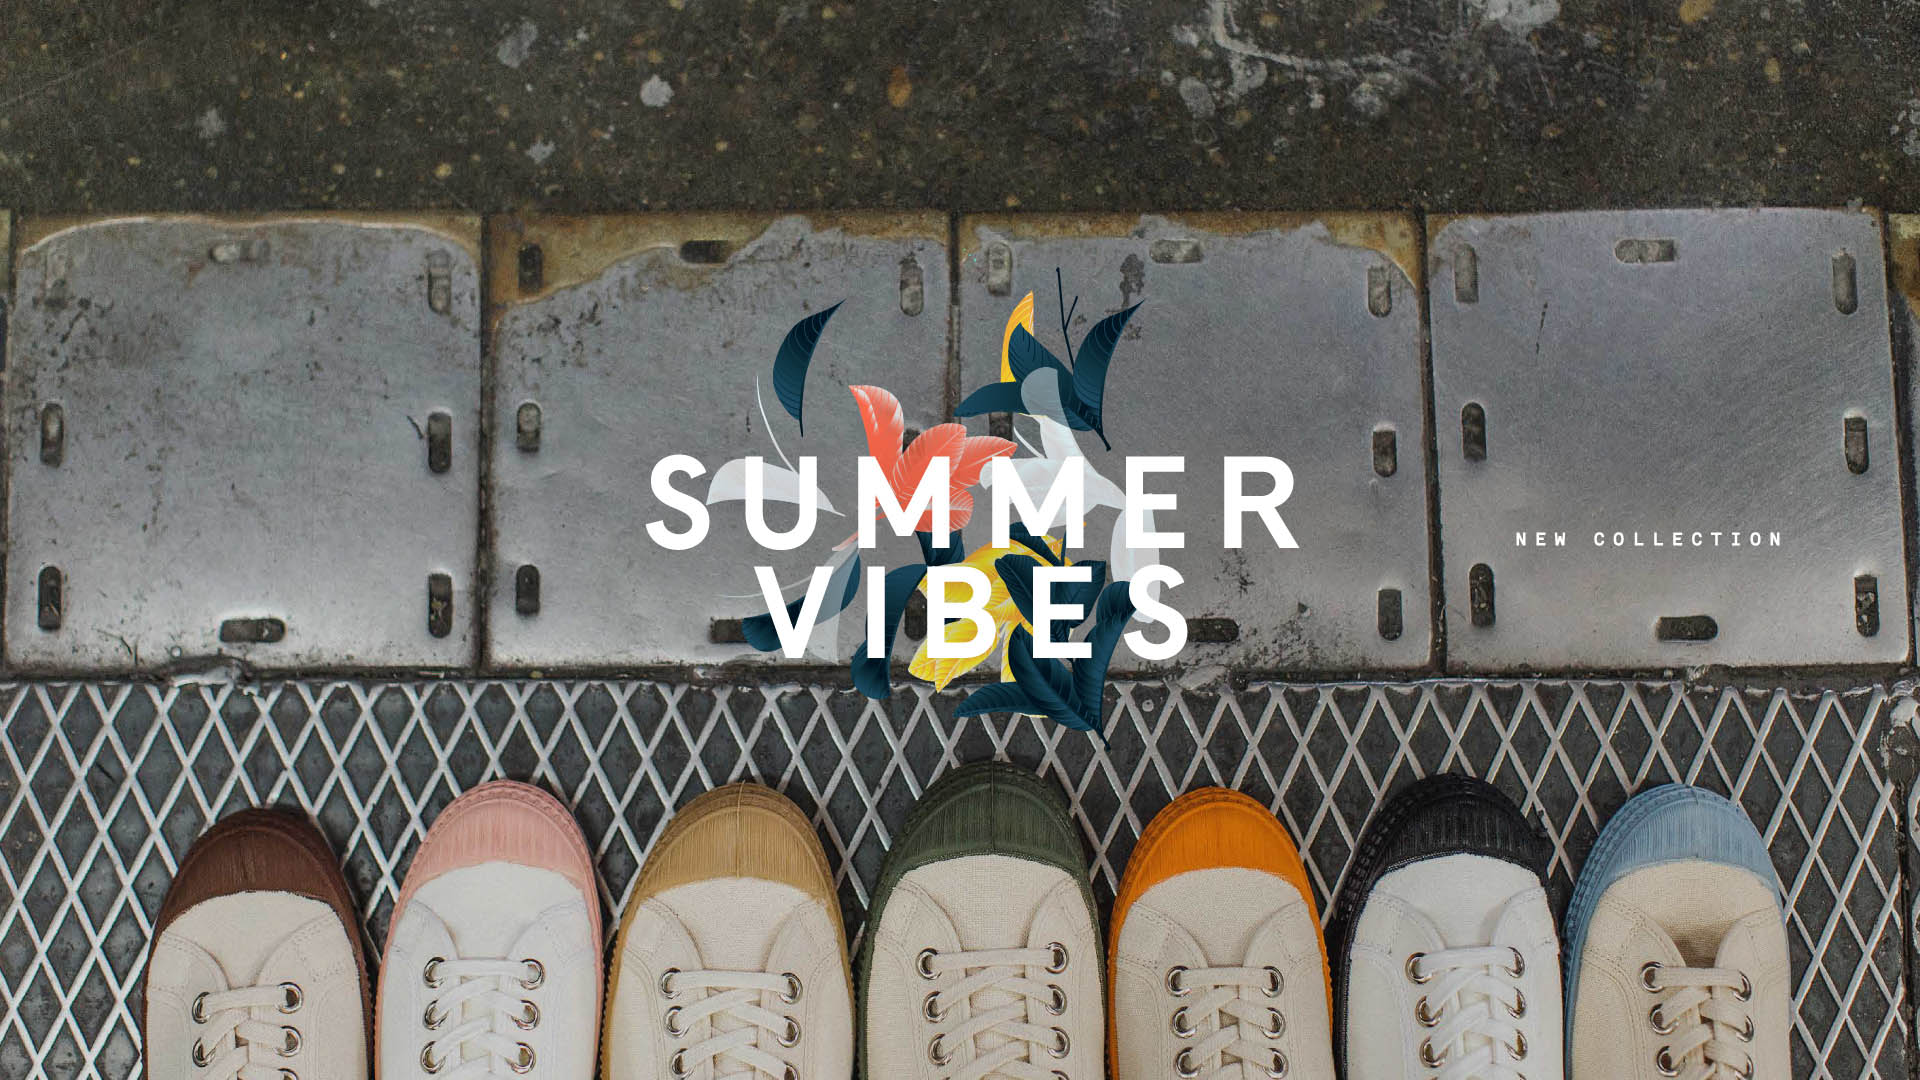 Meet Bernard Men's Summer Vibes